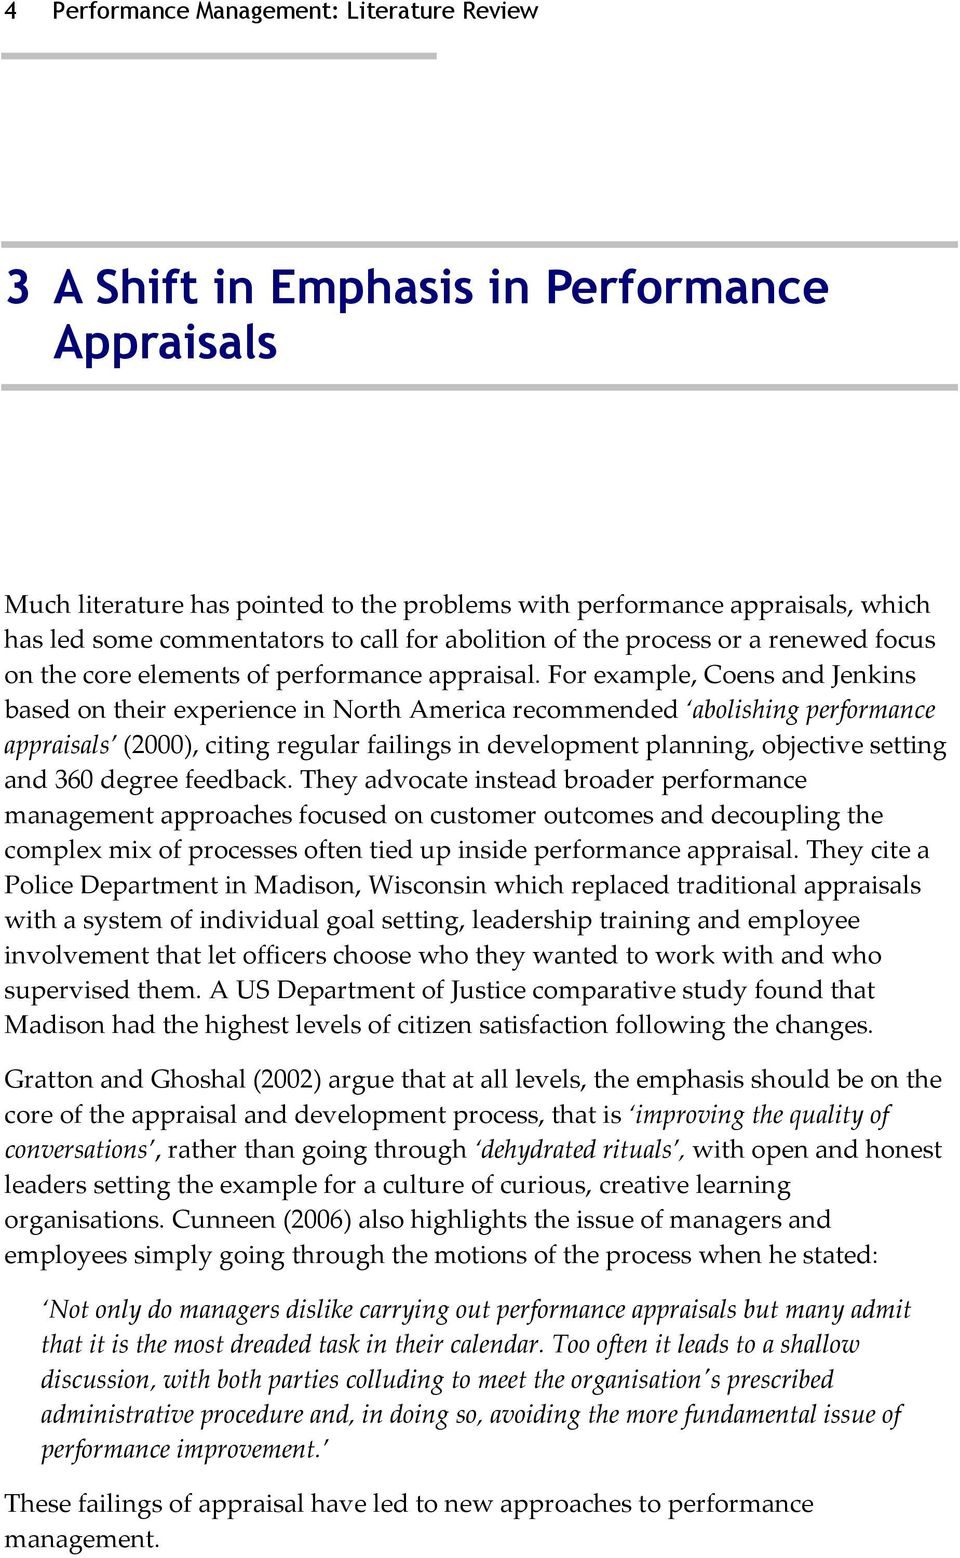 review of literature on 360 degree performance appraisal Purposes of the performance appraisal process: administrative and  developmental  the ultimate objective of carrying out this literature review is to  help us  (johnson & shields, 2007), 360-degree feedback (garavan, morley, &  flynn  1997.